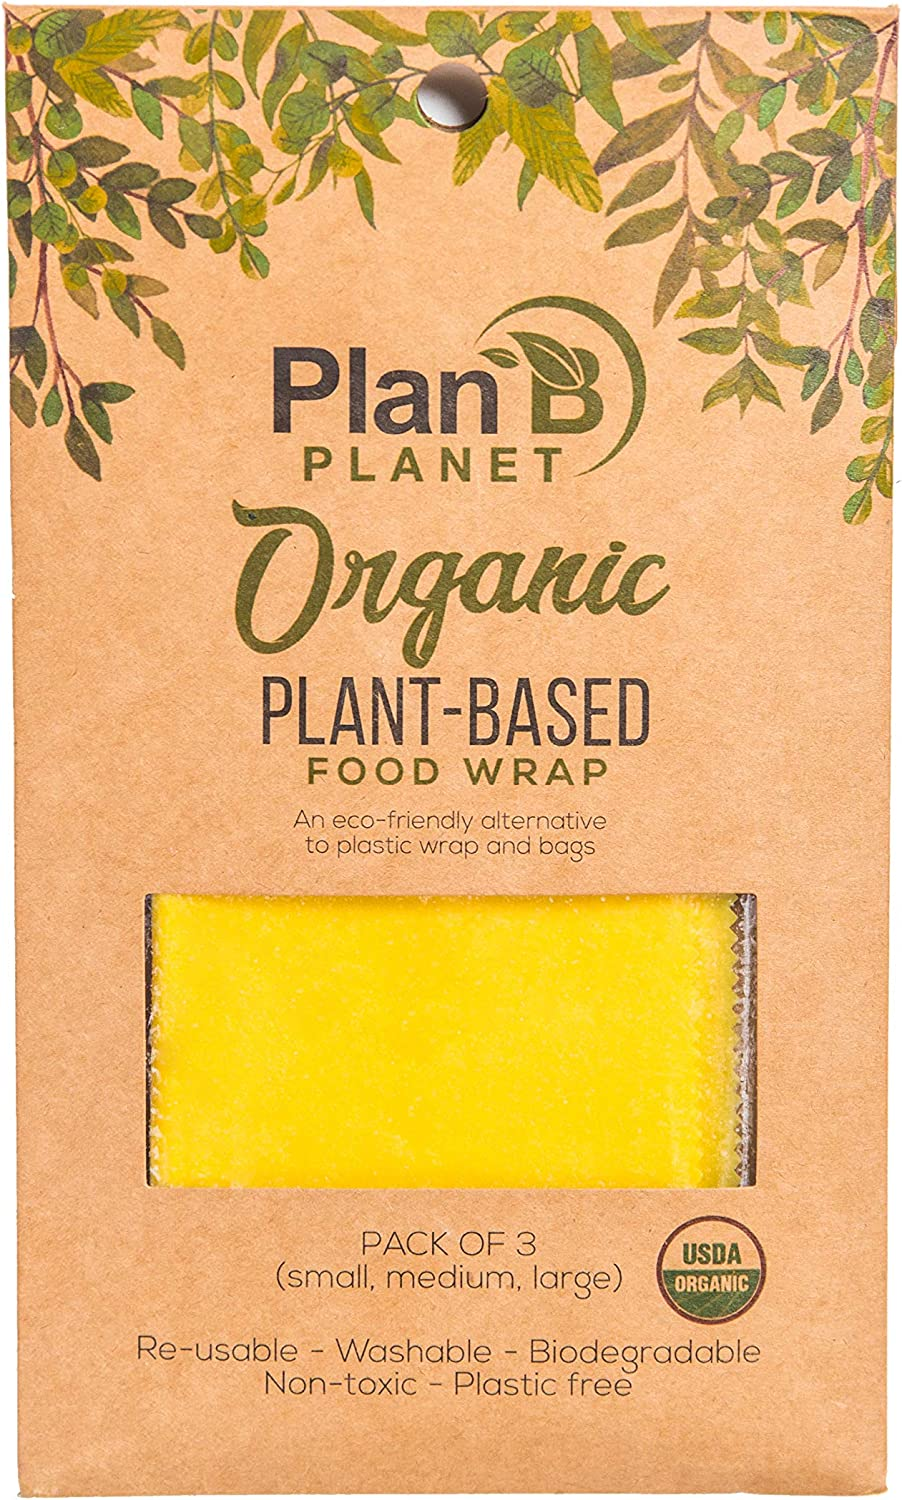 Organic Reusable Plant Based Food Wraps by Plan B Planet, No Beeswax - Biodegradable, Vegan, Non-Toxic, Eco Friendly Plastic Free Food Storage- Assorted 3 pack (1 Small, 1 Medium, 1 Large Wrappers)